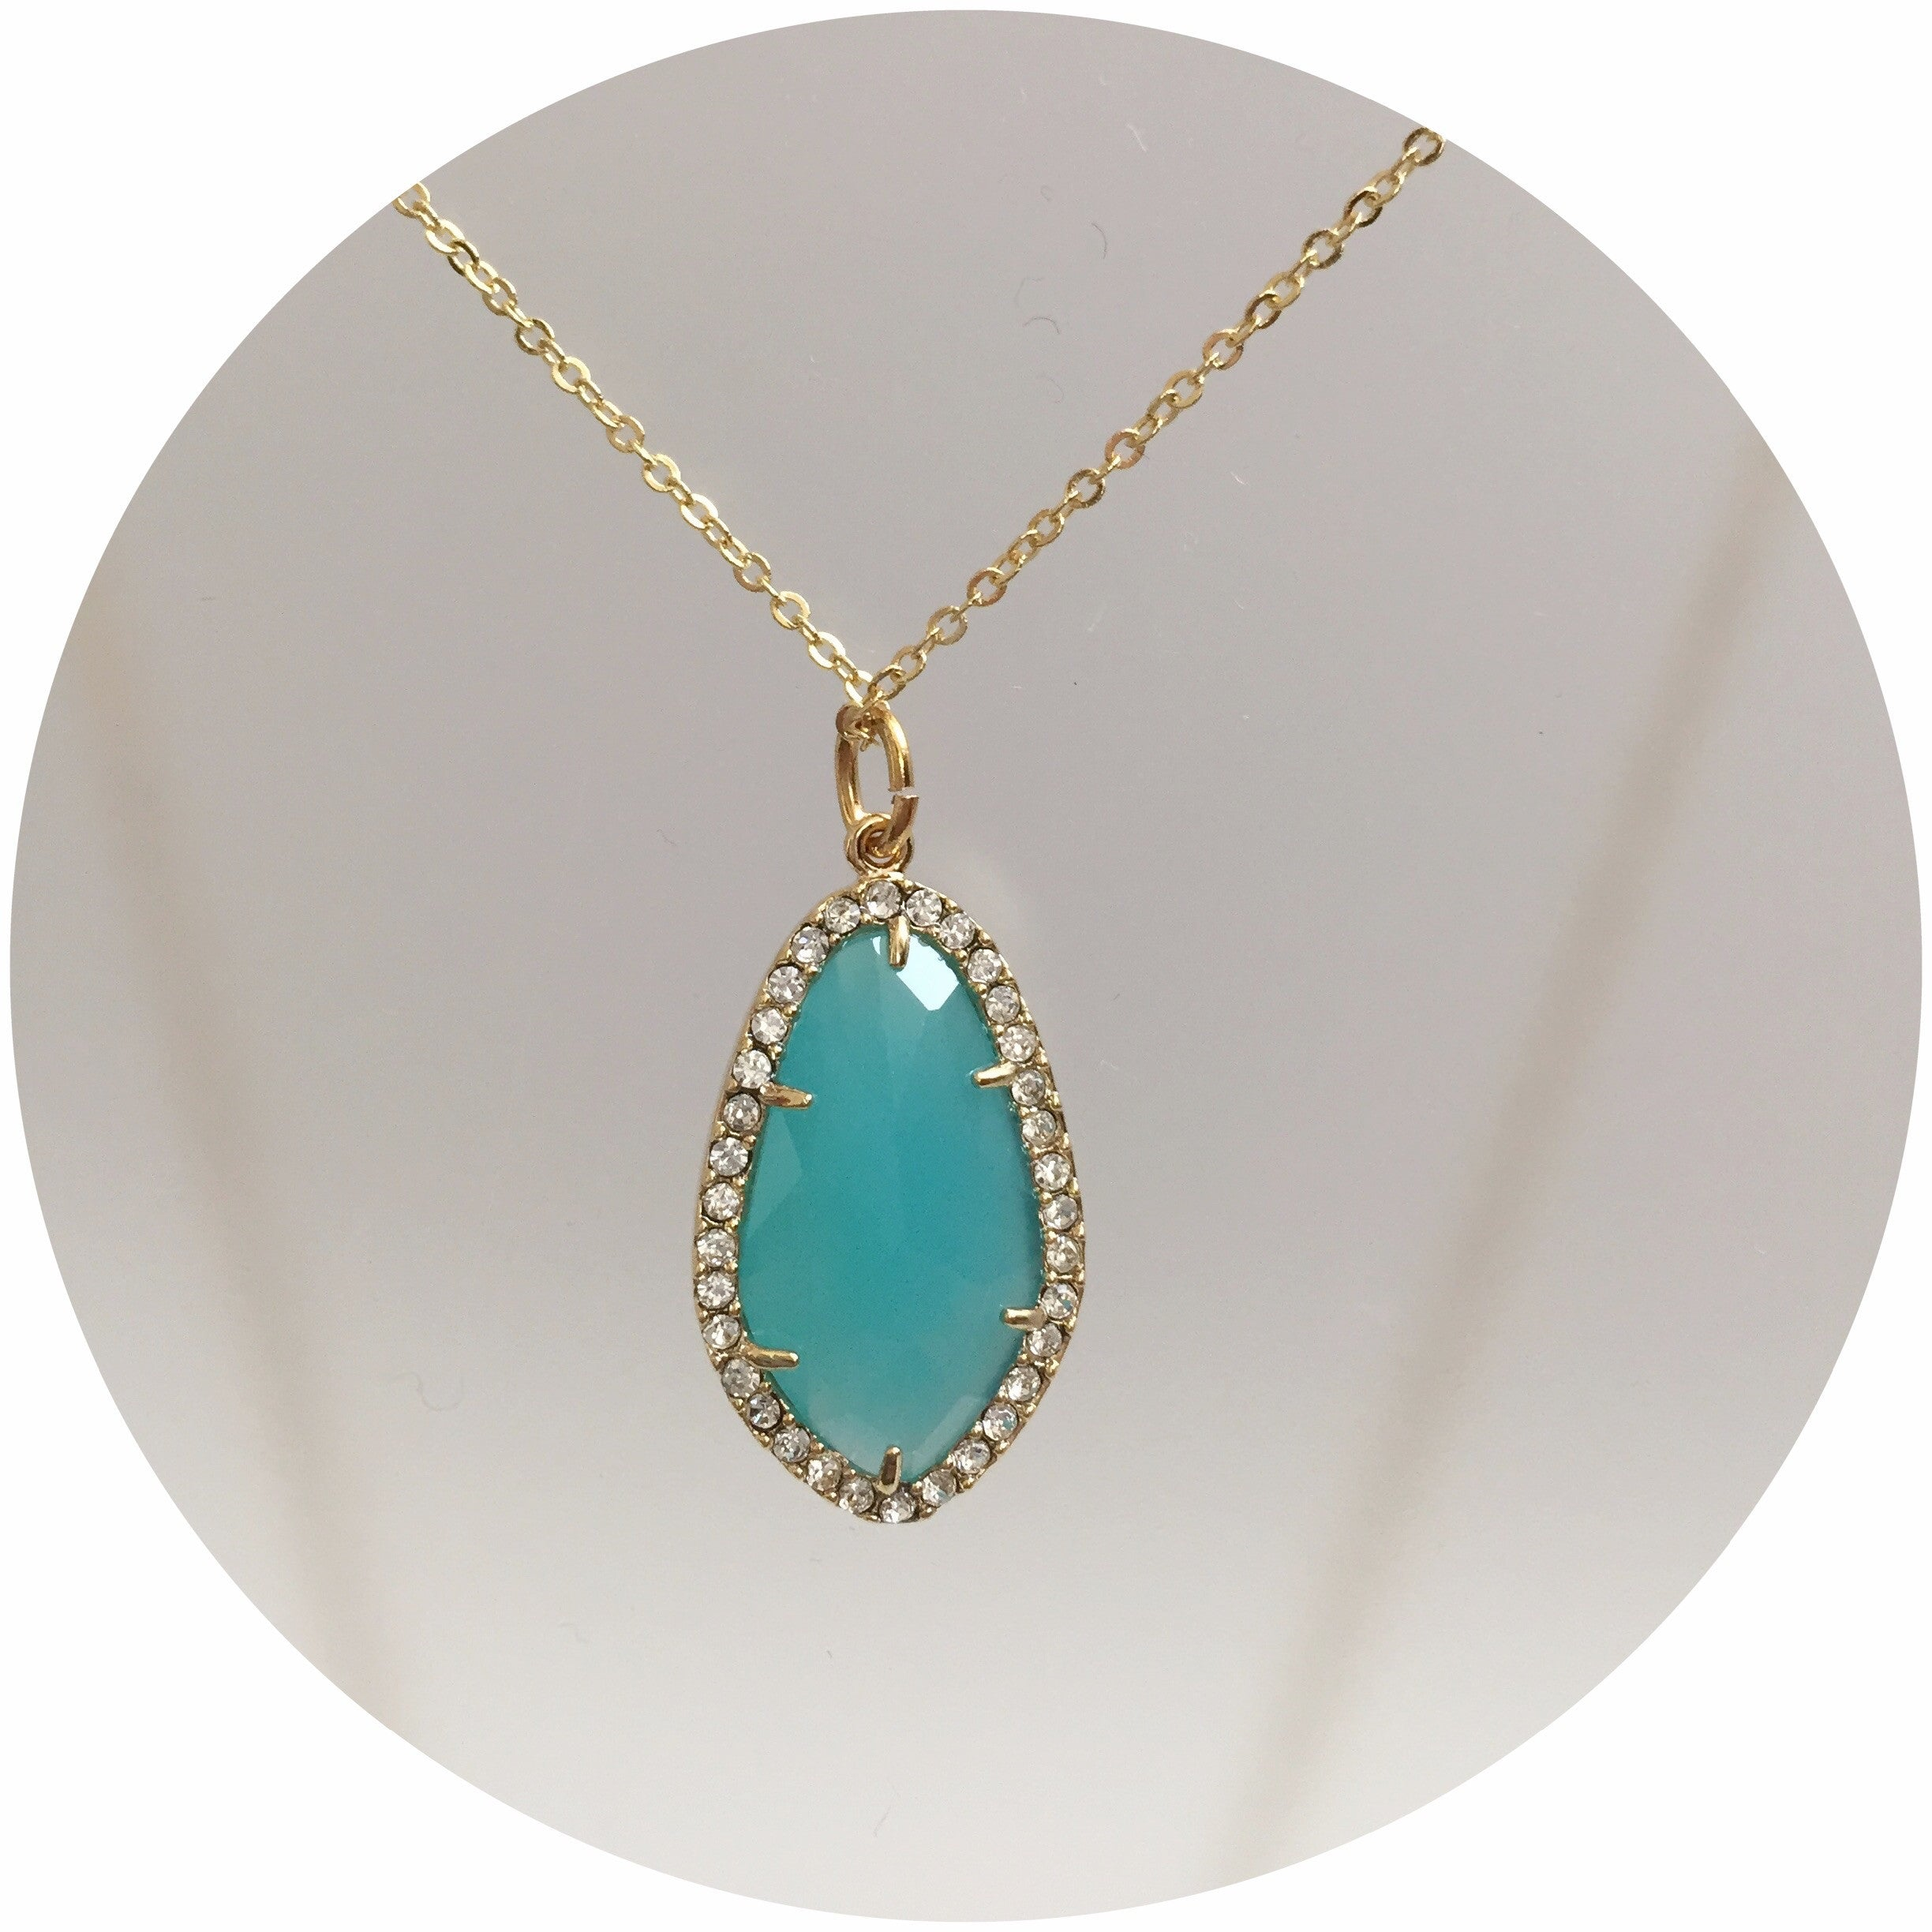 Pavé Aqua Glass Necklace - Oriana Lamarca LLC